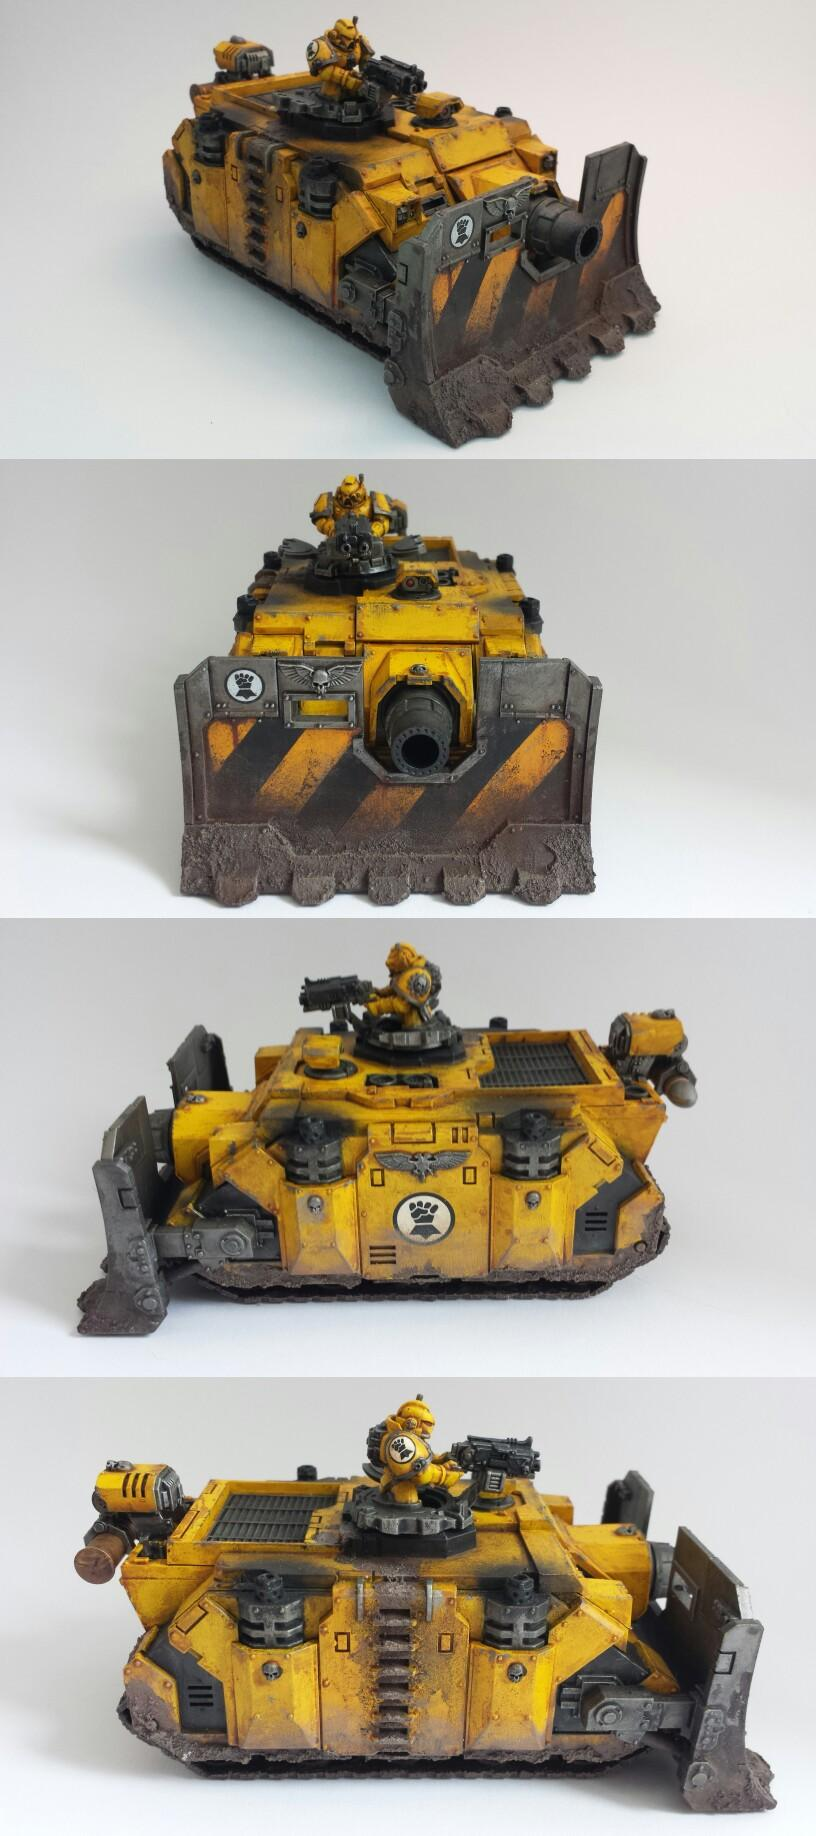 Imperial Fists, Space Marines, Vindicator, Warhammer 40,000